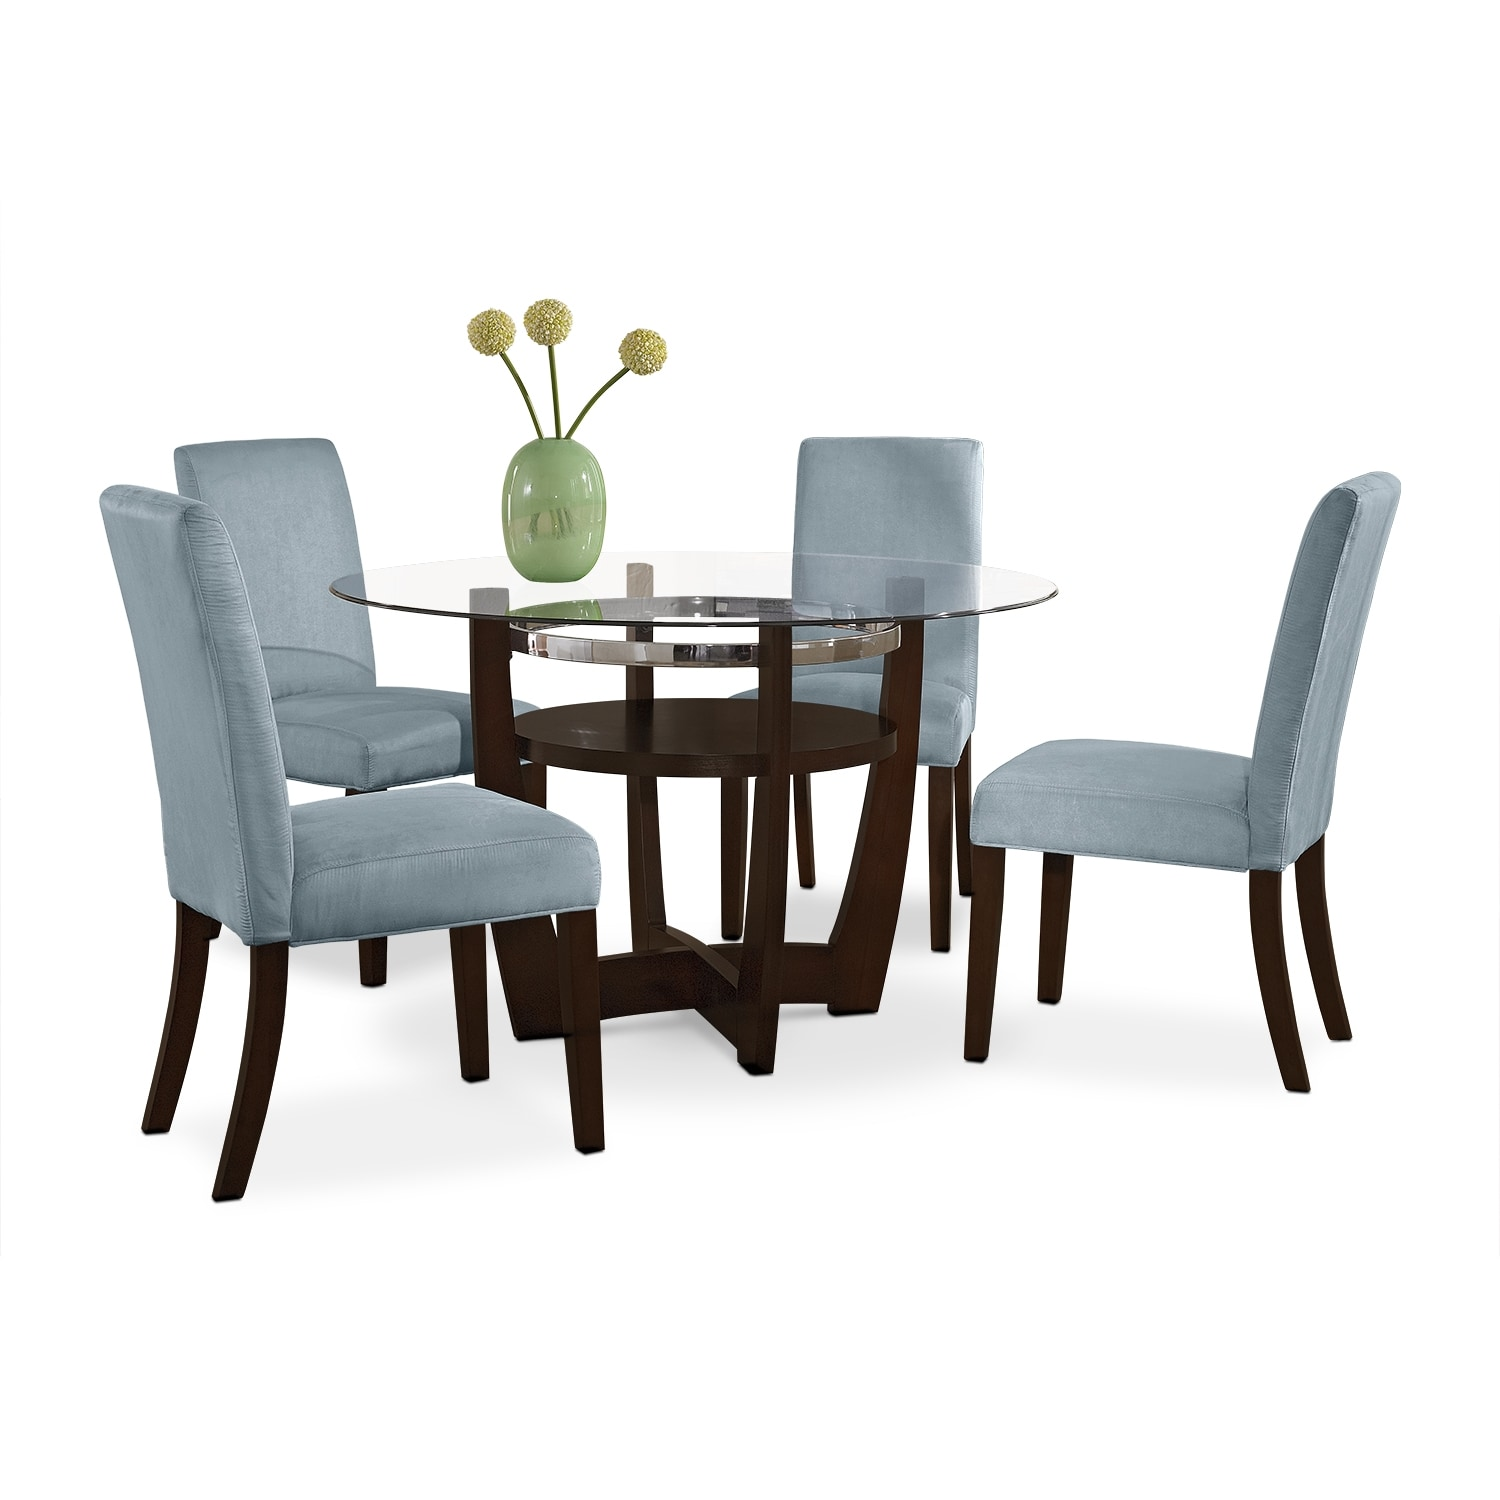 Aqua Dining Chairs Furnishings For Every Room Online And Store Furniture